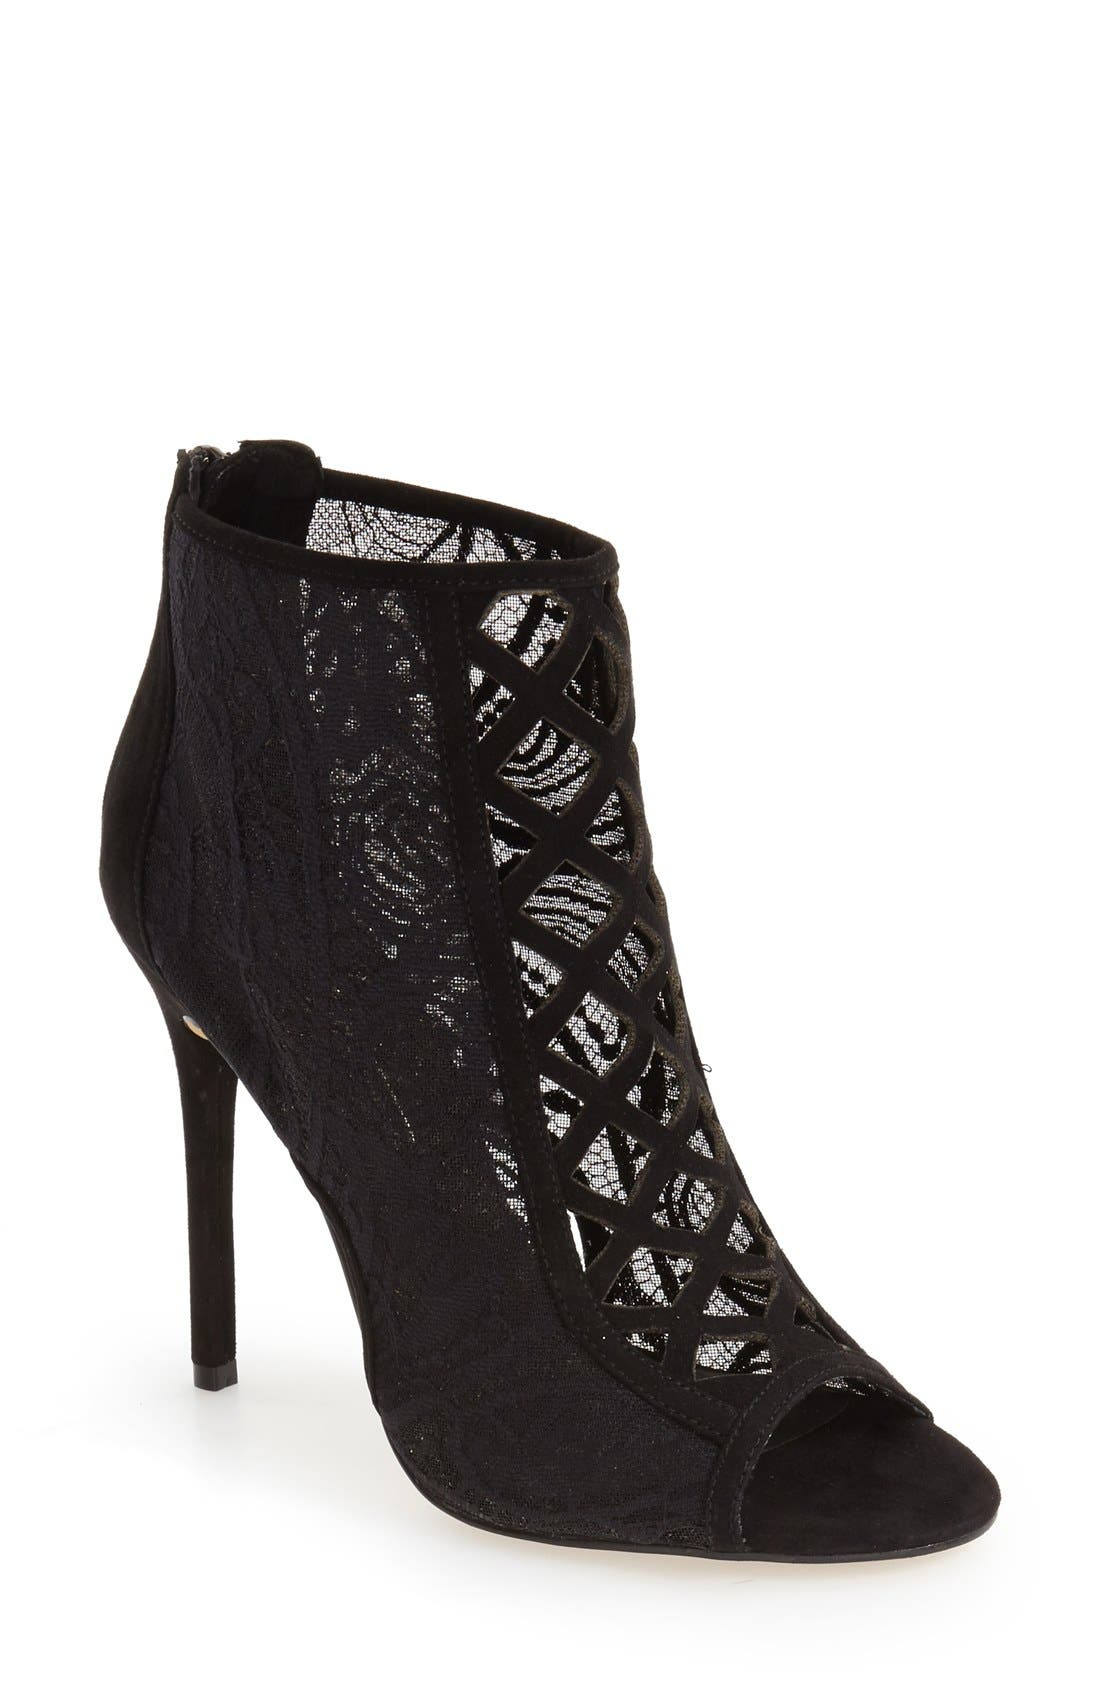 DAYA by Zendaya 'Angus' Lace Open Toe Bootie, Main, color, 008